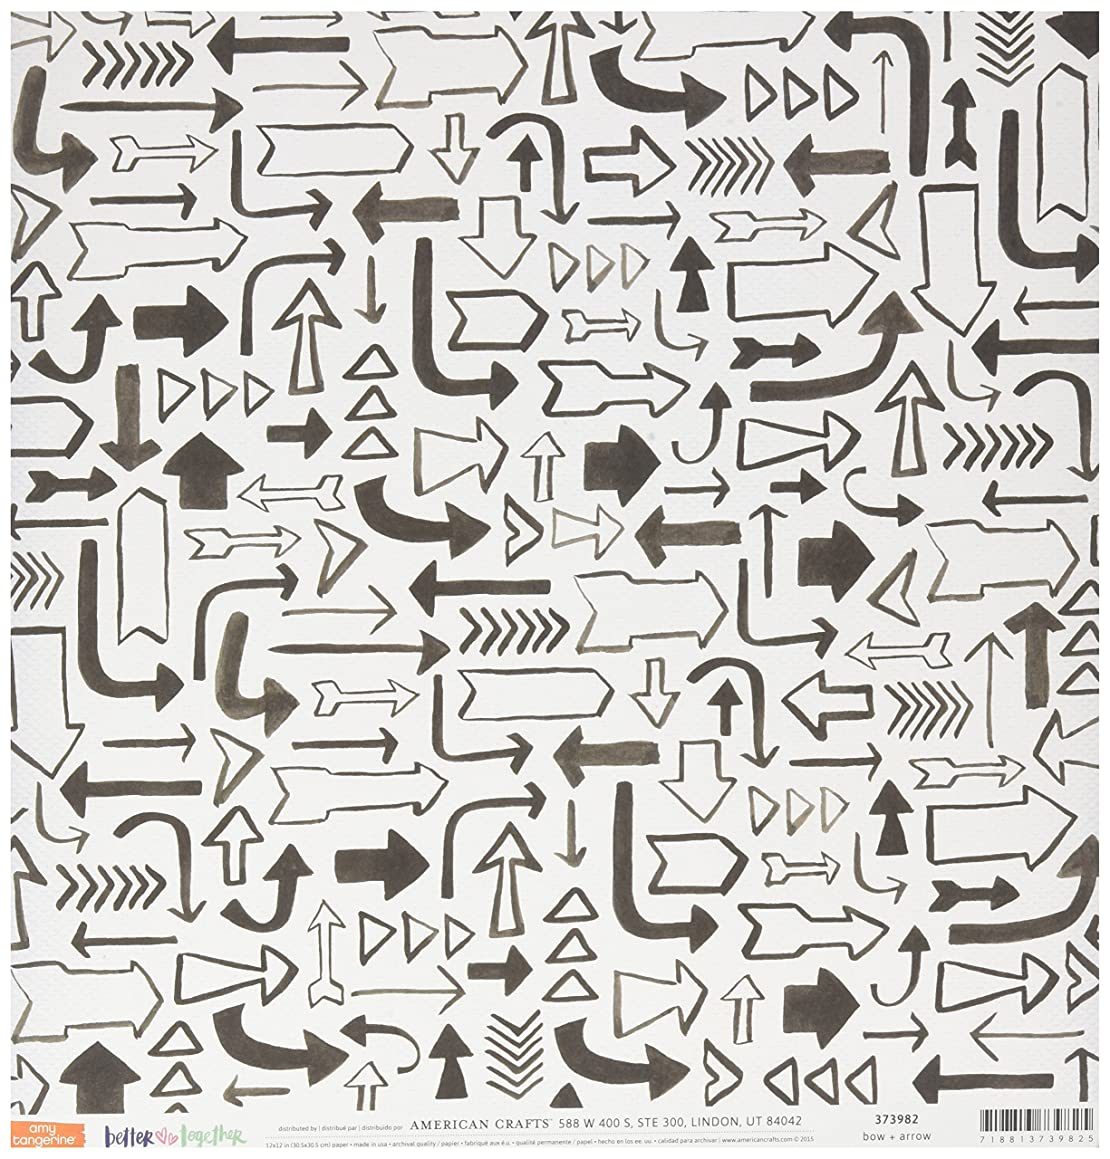 American Crafts 373982 Amy Tan Better Together Double Sided Cardstock (25 Sheets Per Pack), 12